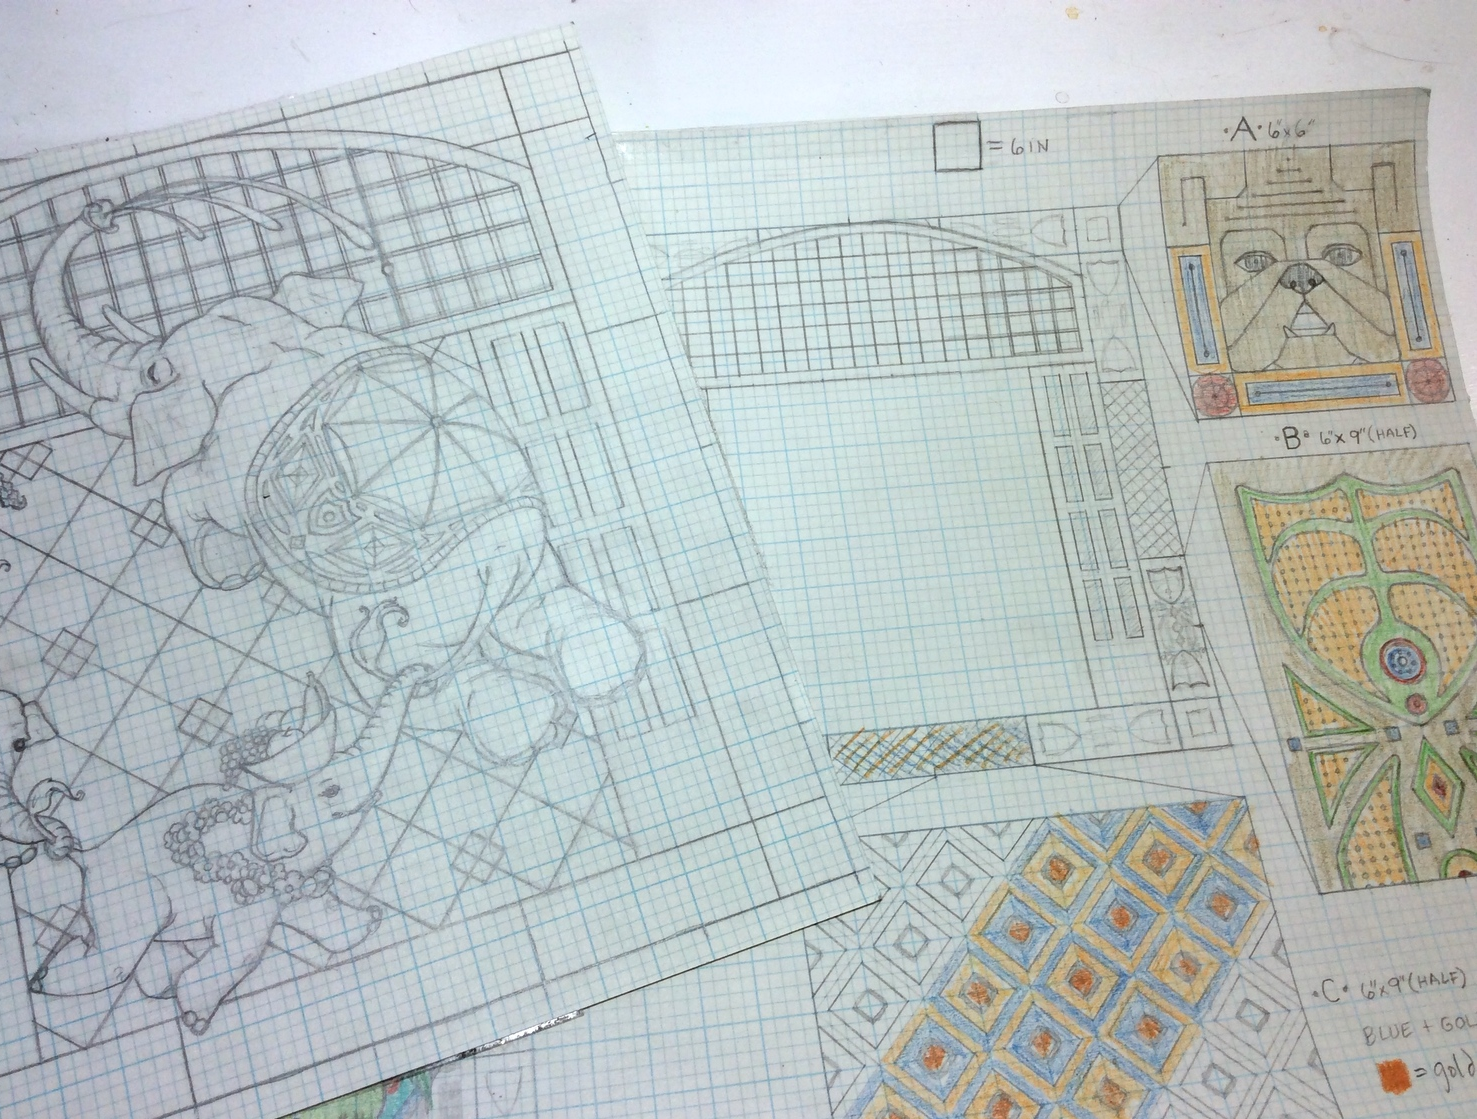 There have been several rounds of scale drawings for every element of the image.